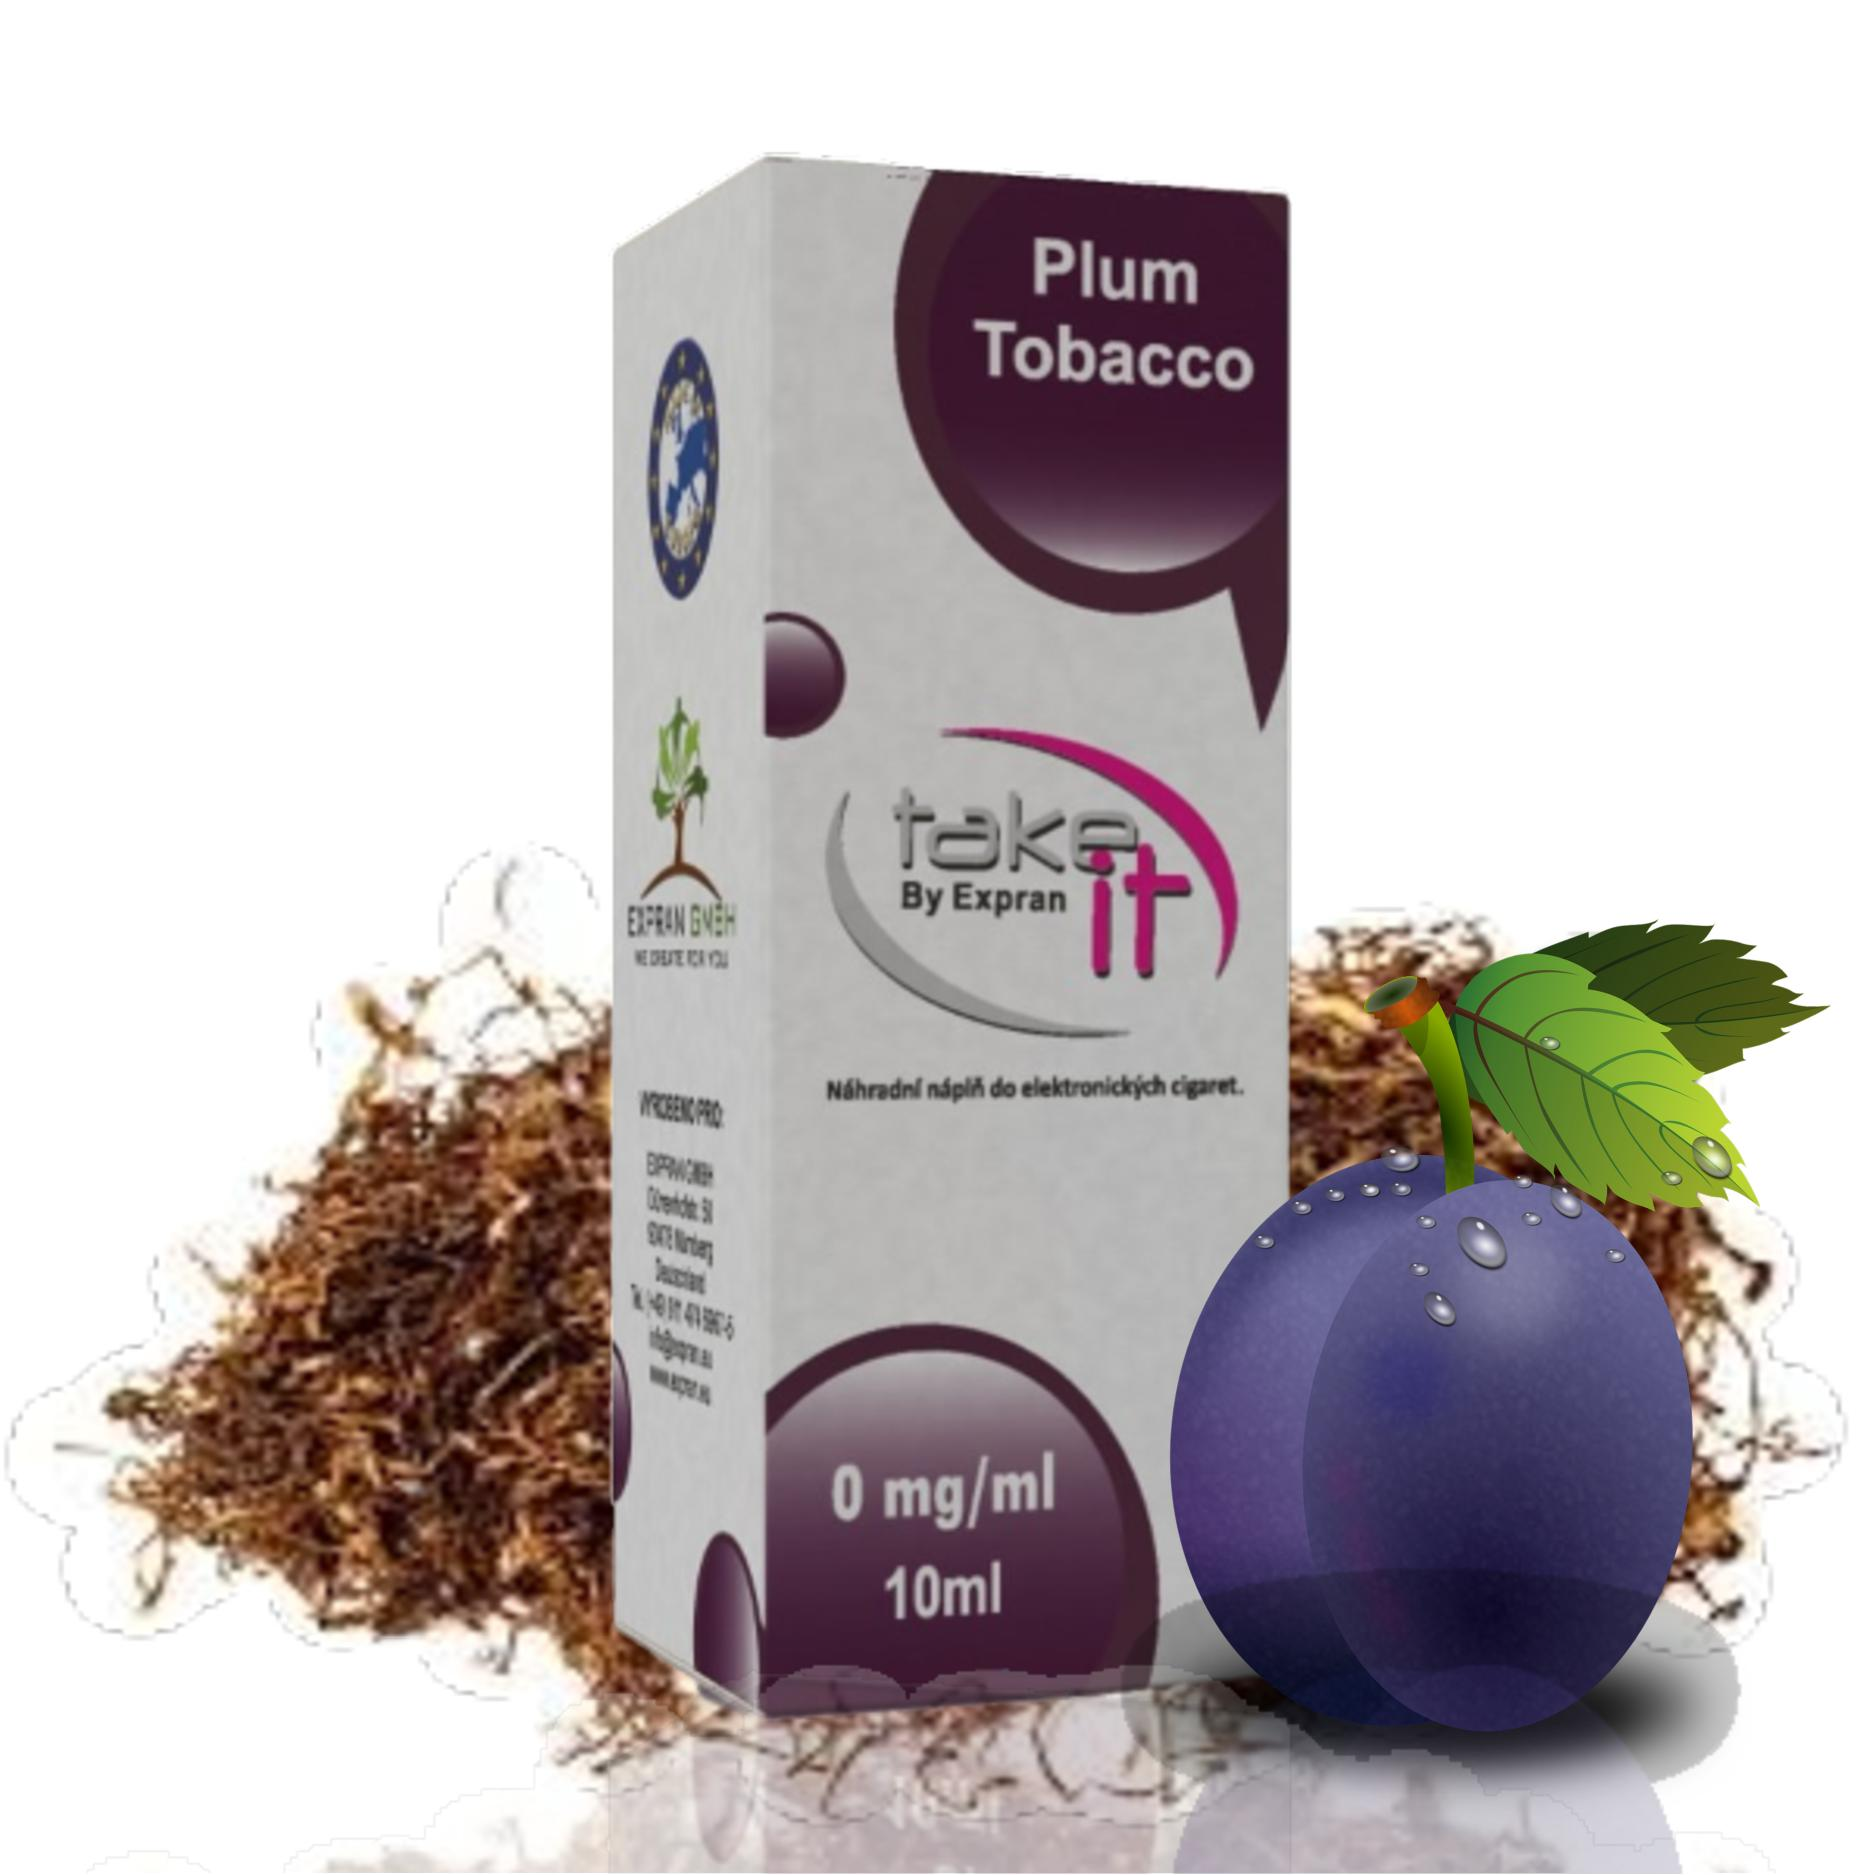 10 ml Take It - Plum Tobacco 12 mg/ml